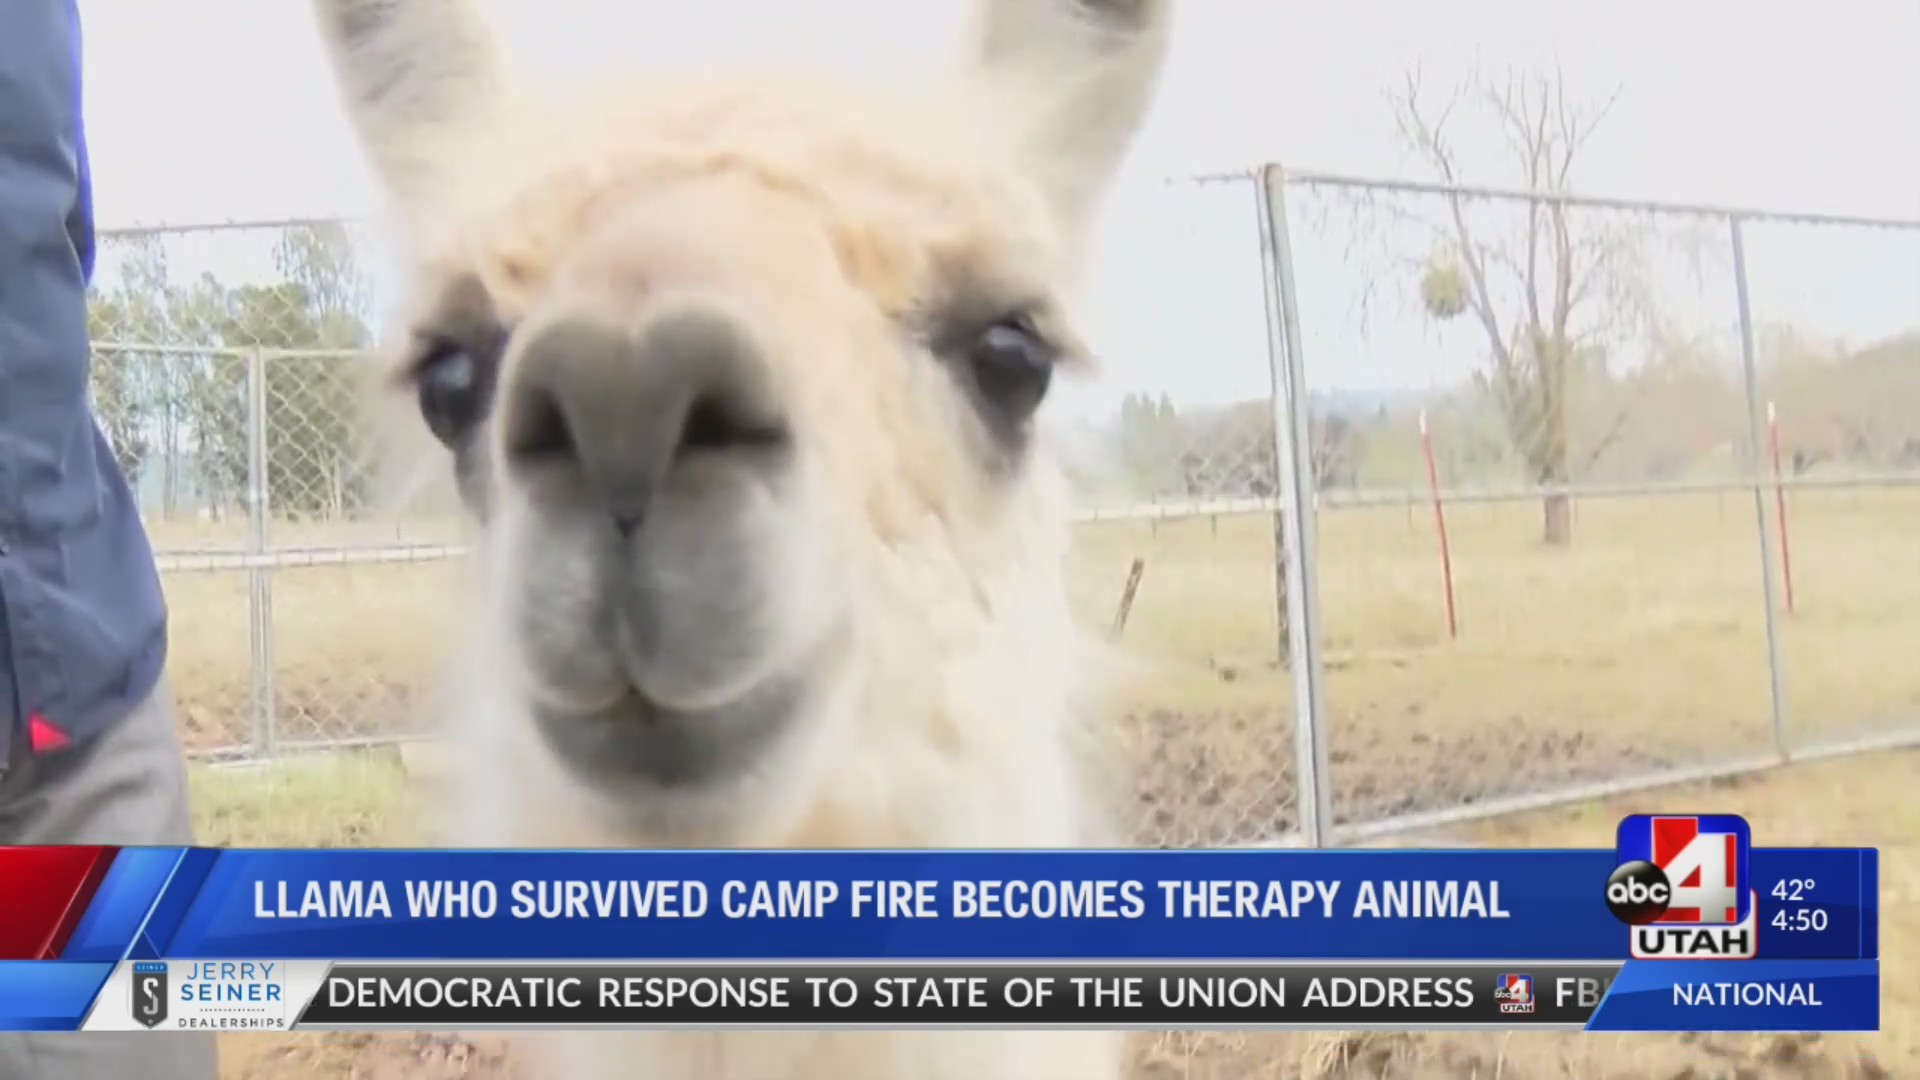 California family turns llama who survived Camp fire into a therapy animal